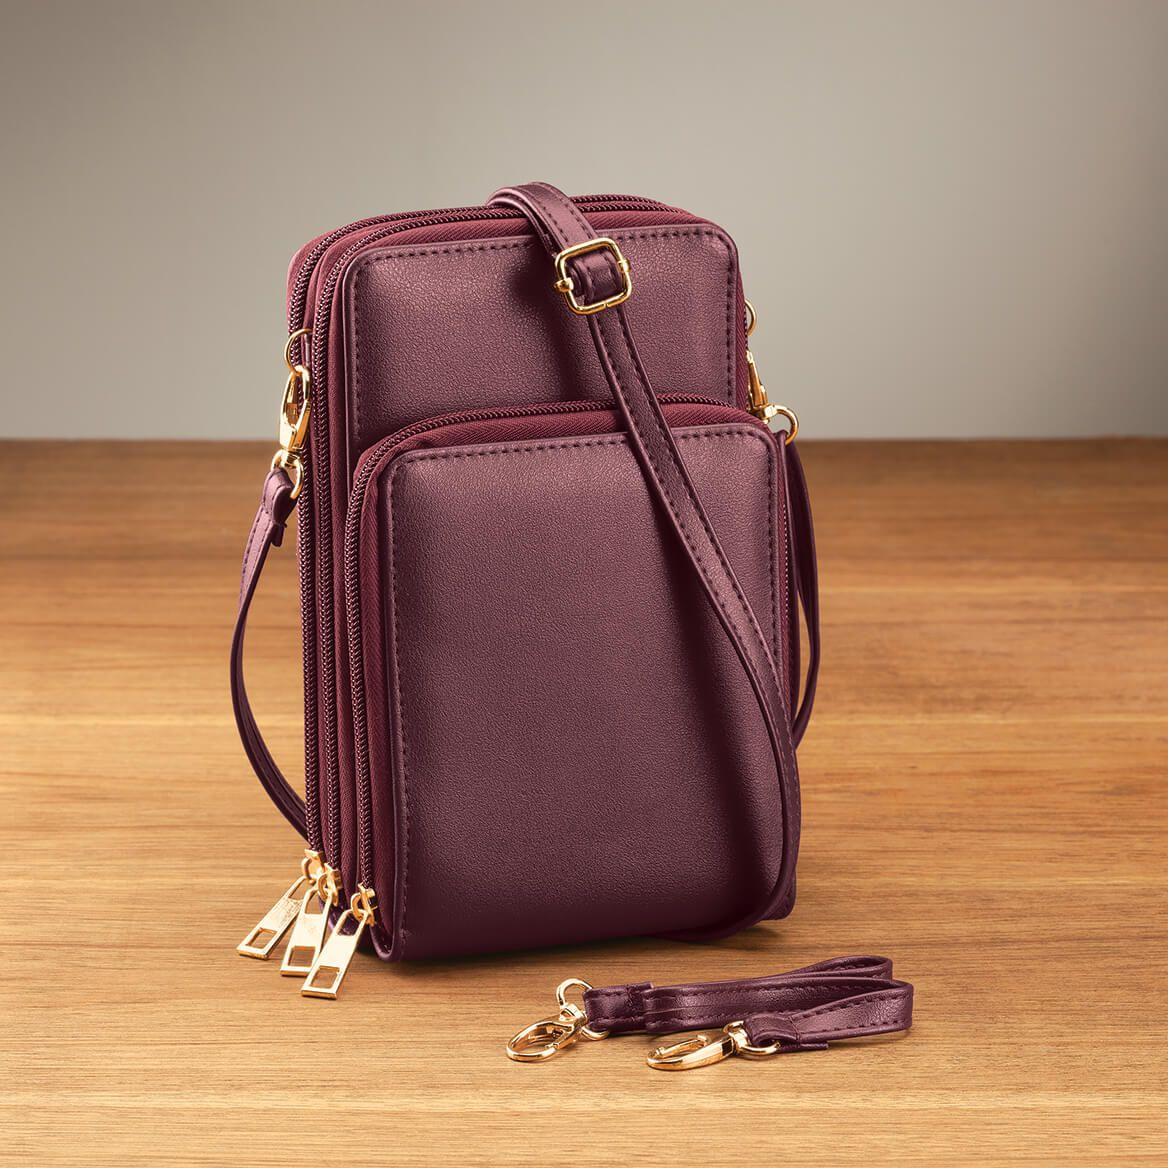 Multi-Compartment Cellphone Purse with Touch Screen-371872